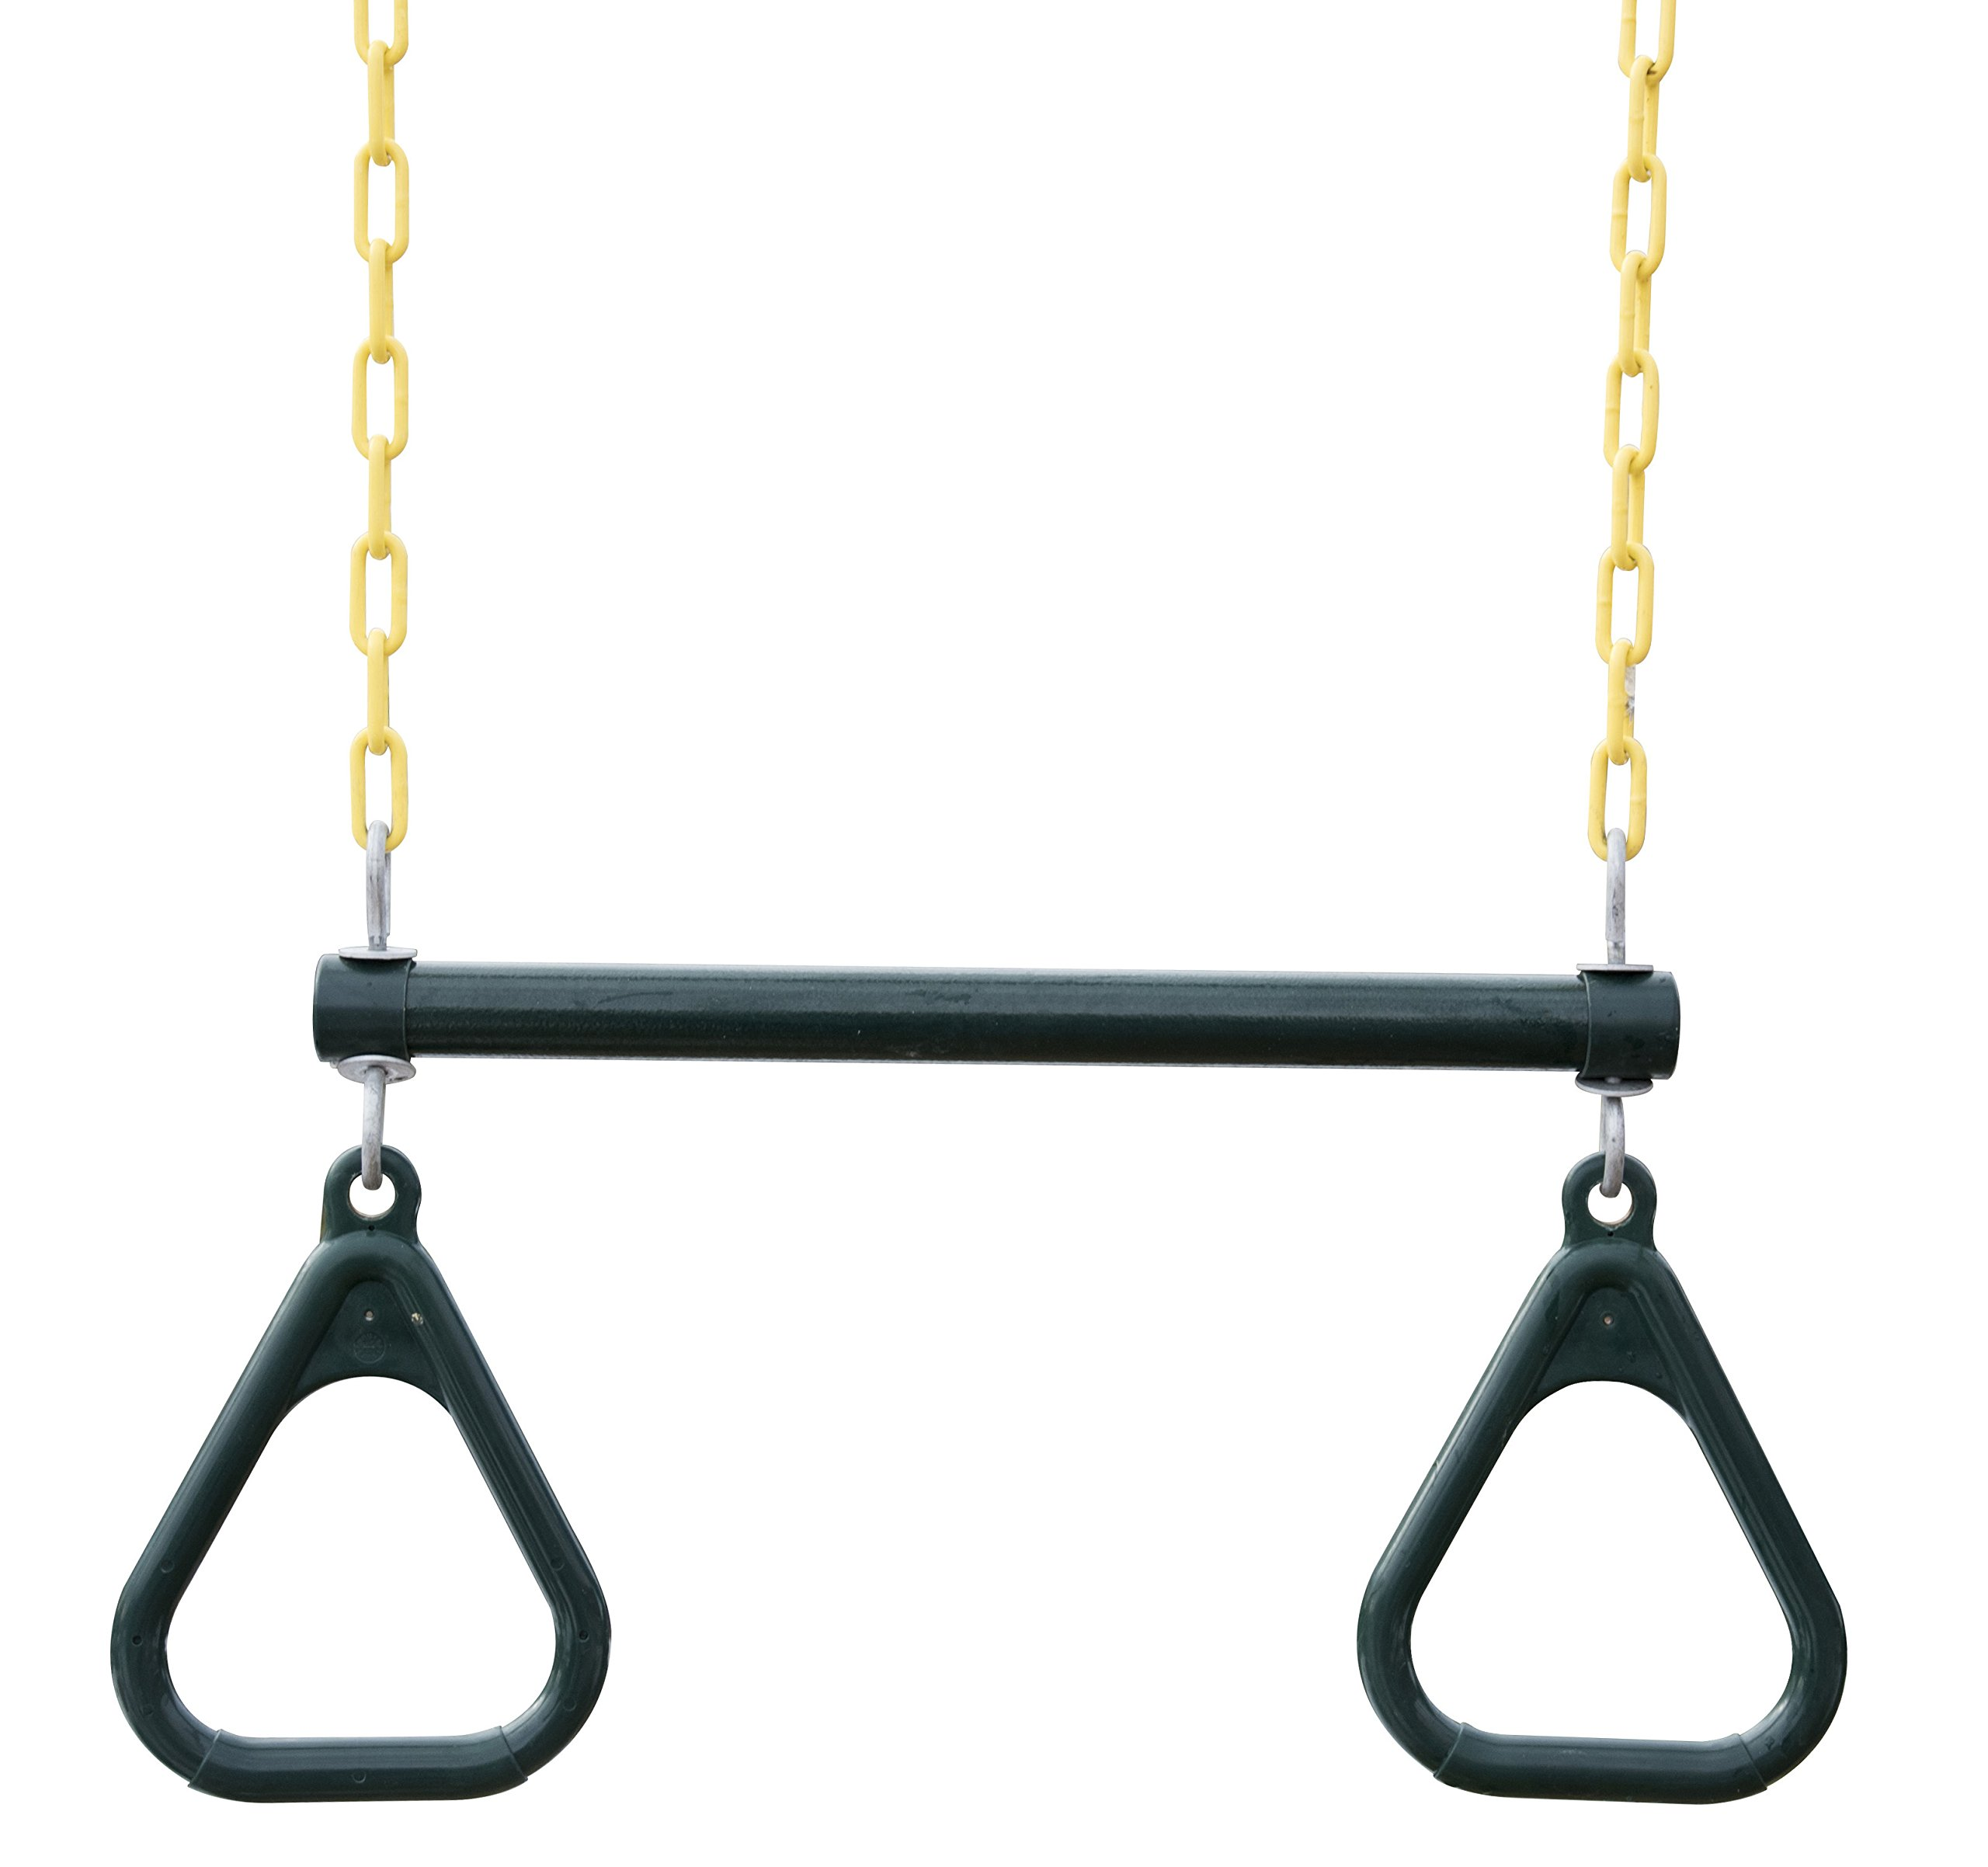 18'' Trapeze Bar with Rings - Heavy Duty Steel with Plastic Coated Chains by Squirrel Products